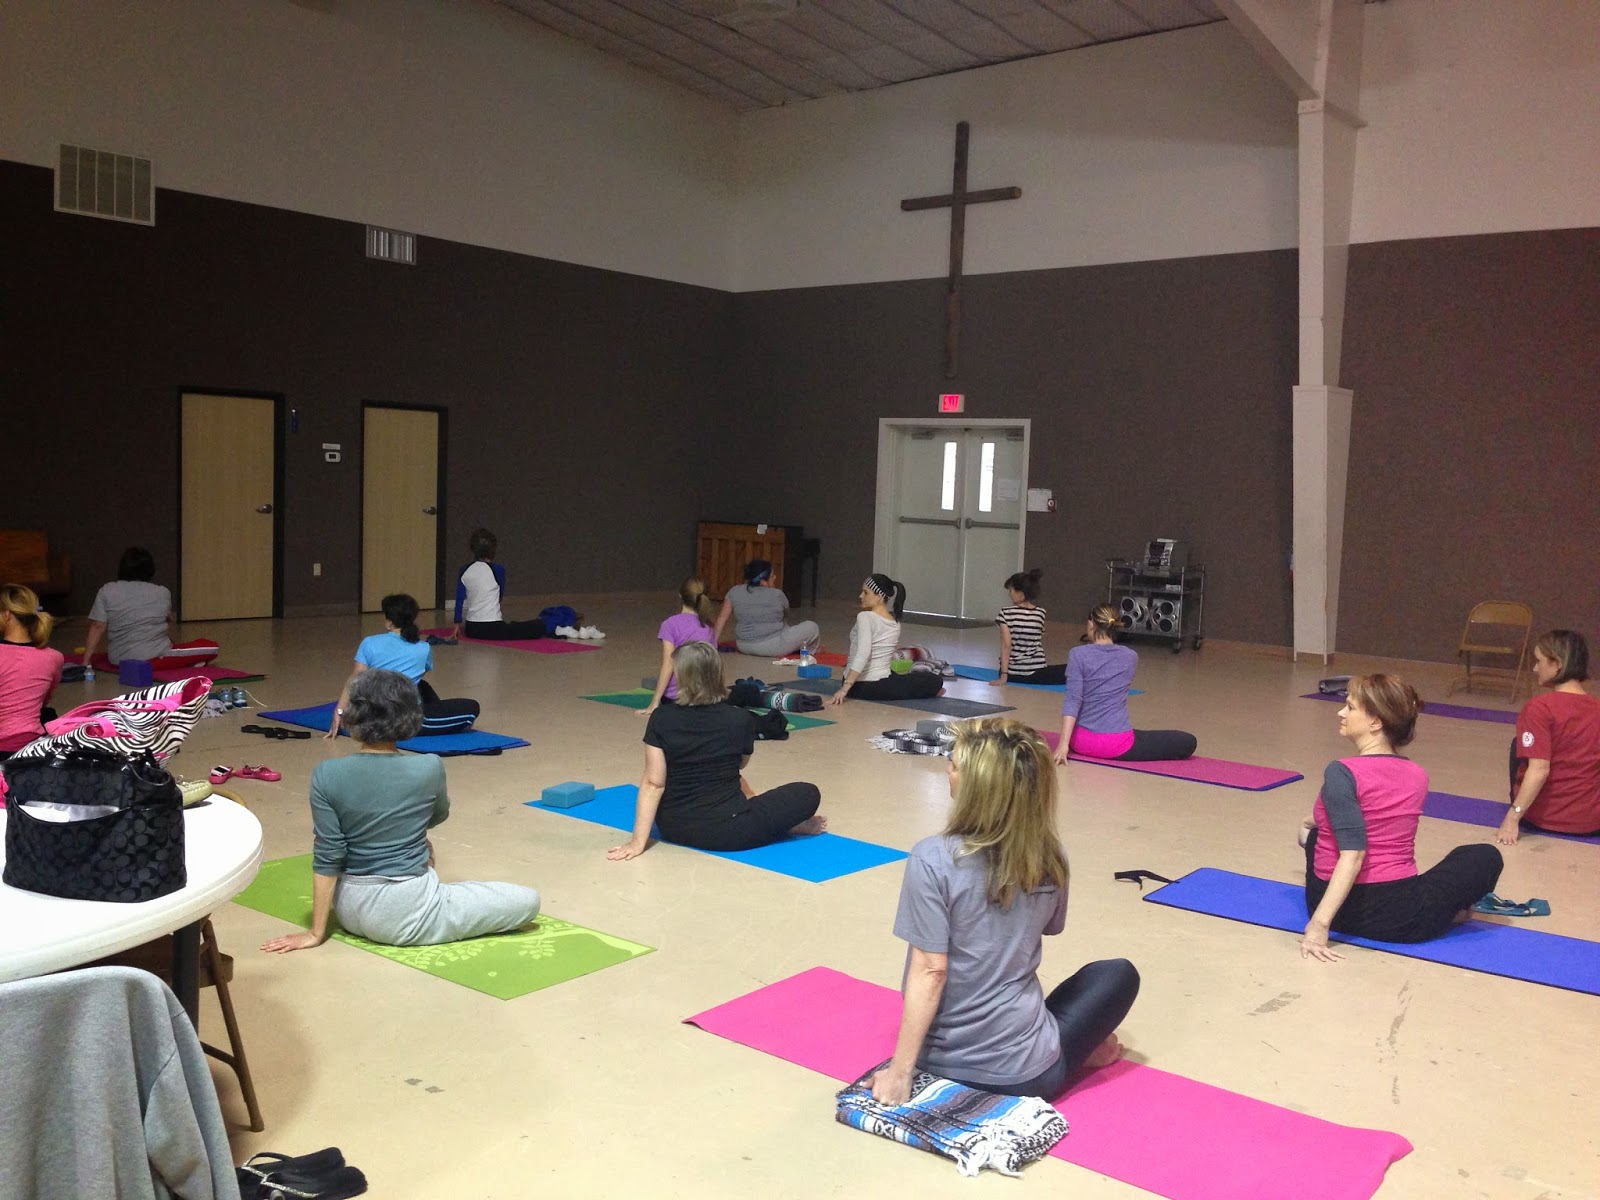 Just $5 for Yoga at Wesley UMC Mondays-6:15pm, some Fridays-5:30pm